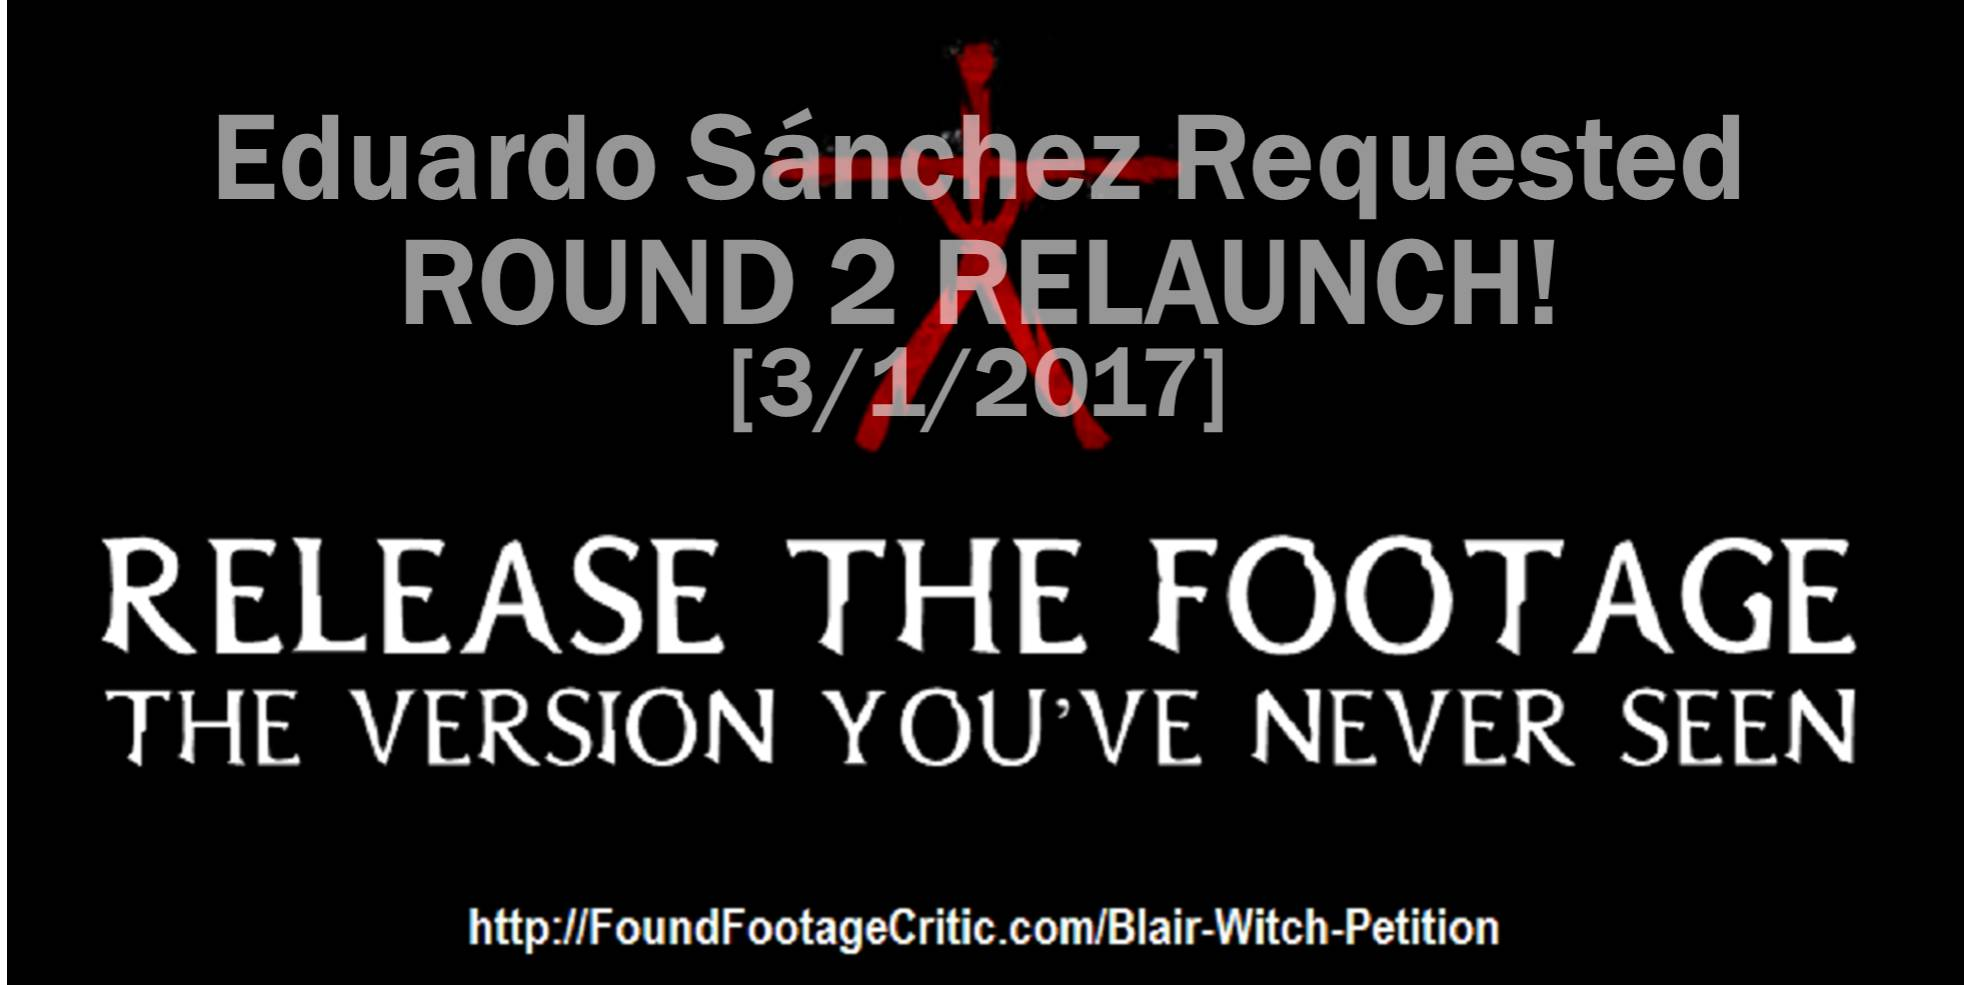 Blair Witch Petition Relaunch